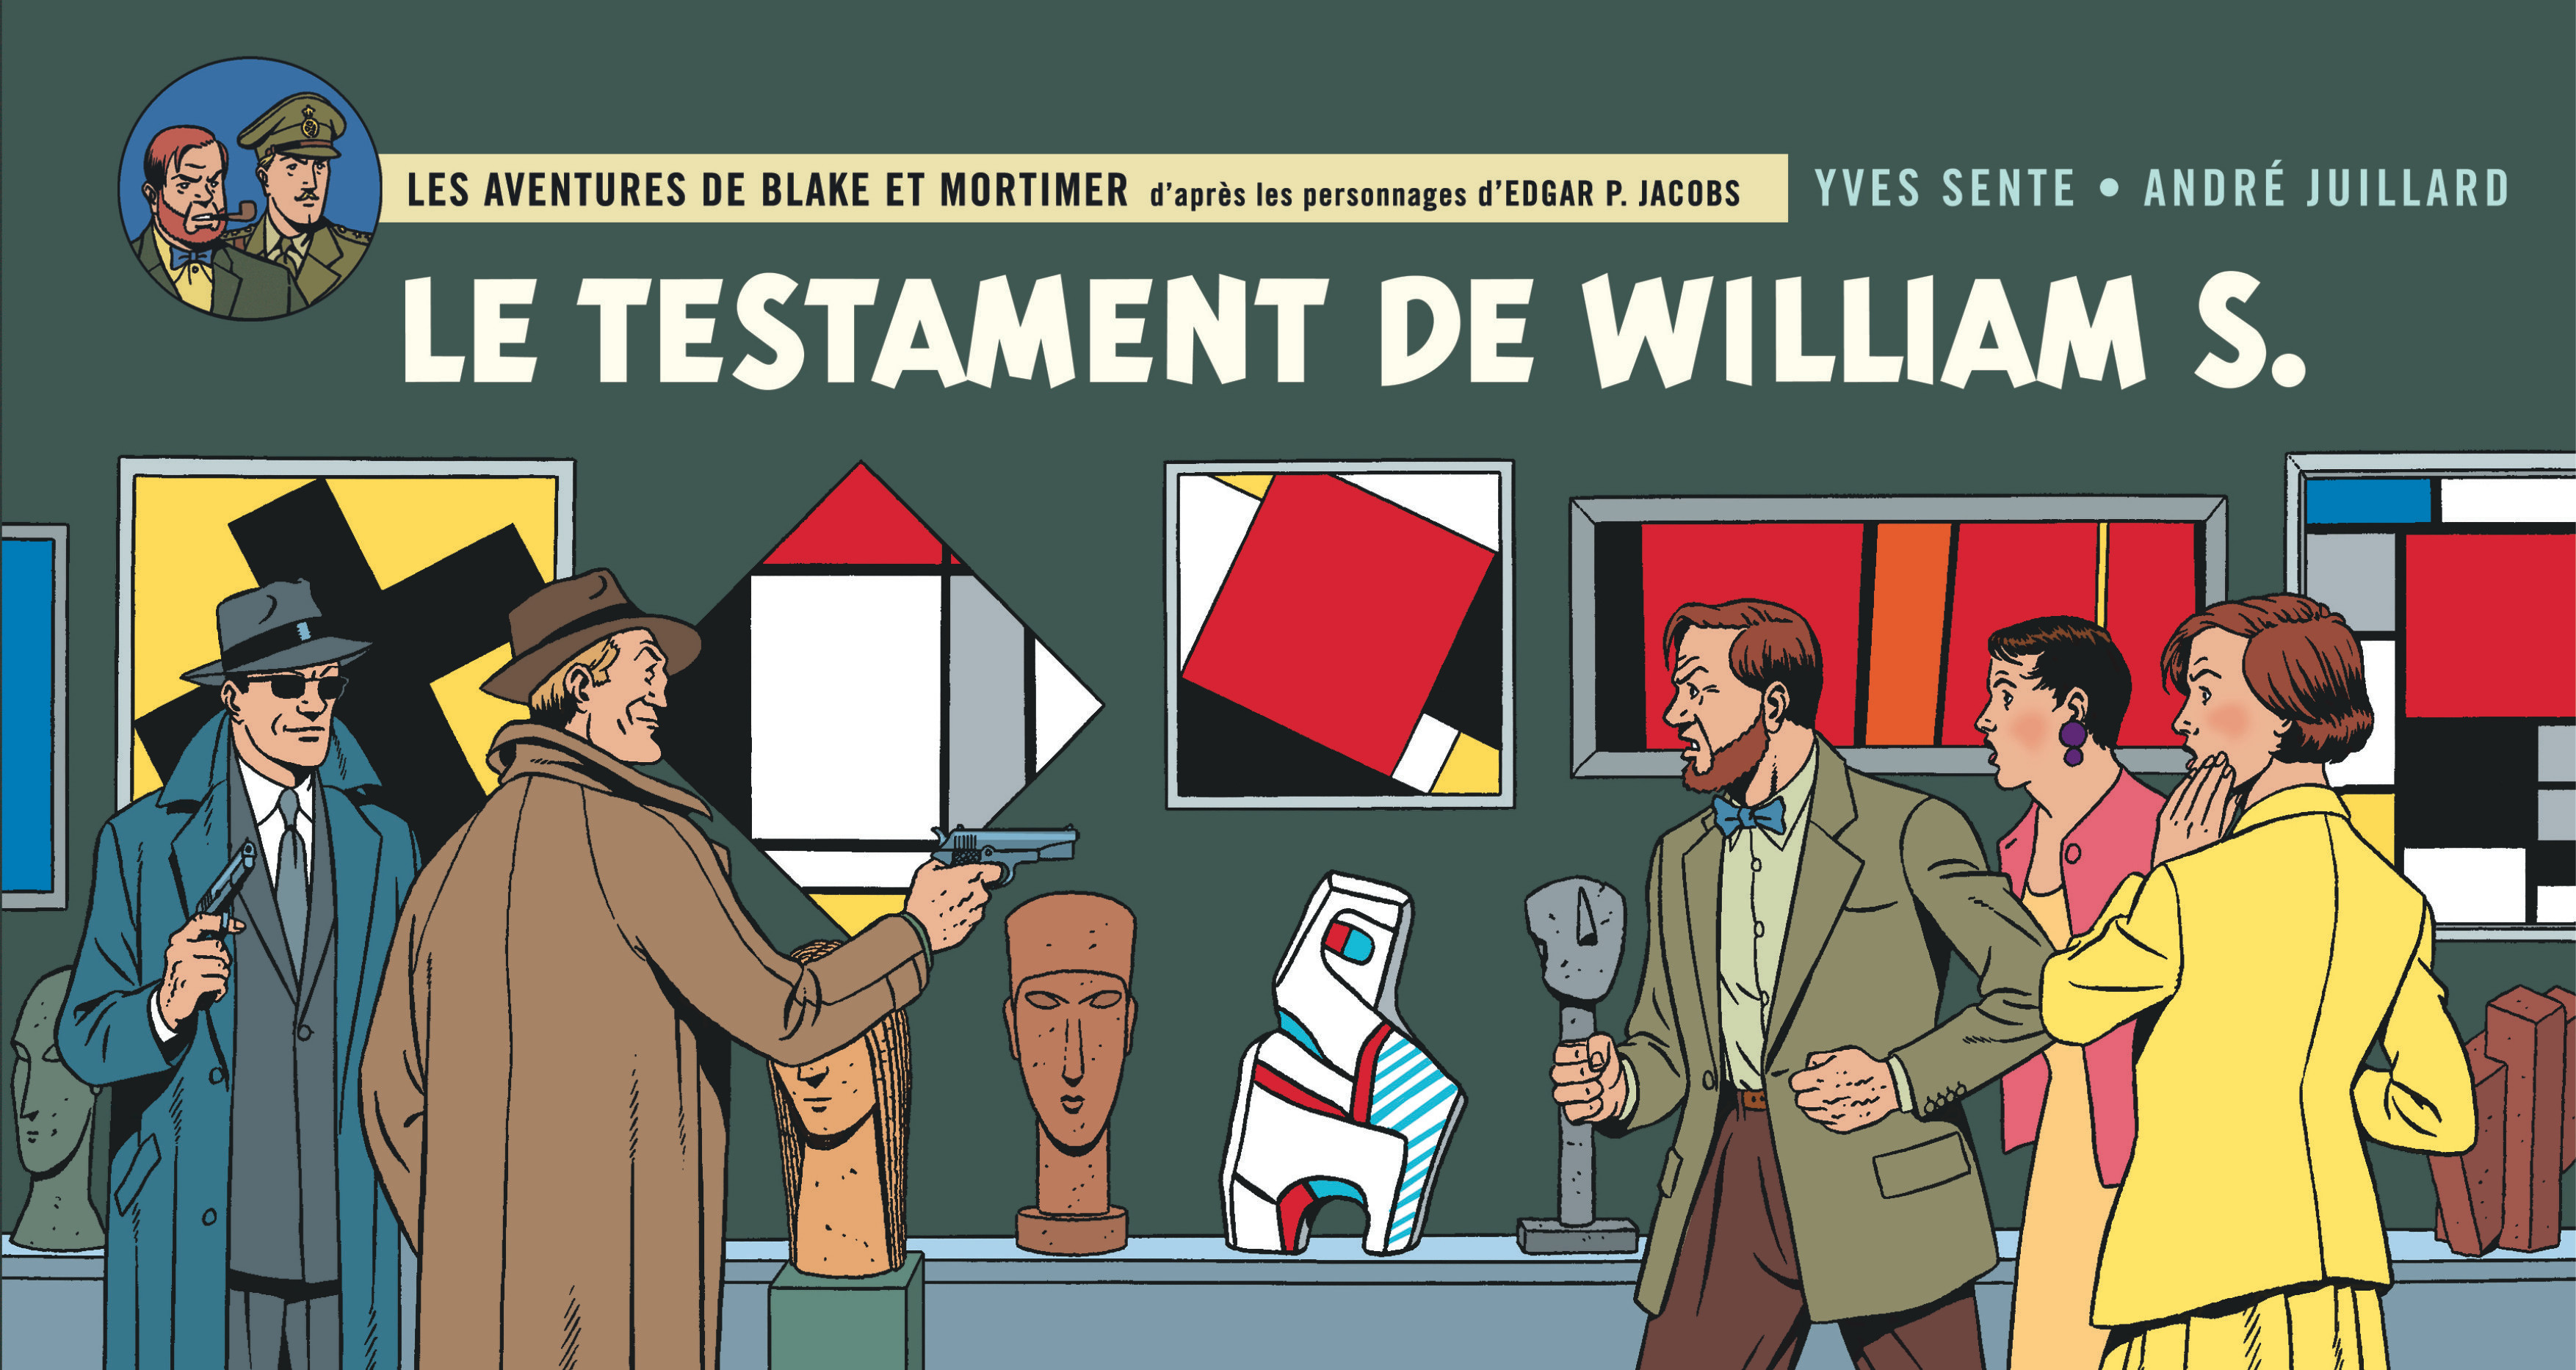 Couverture pour la versions strips (Blake et Mortimer - 2016)